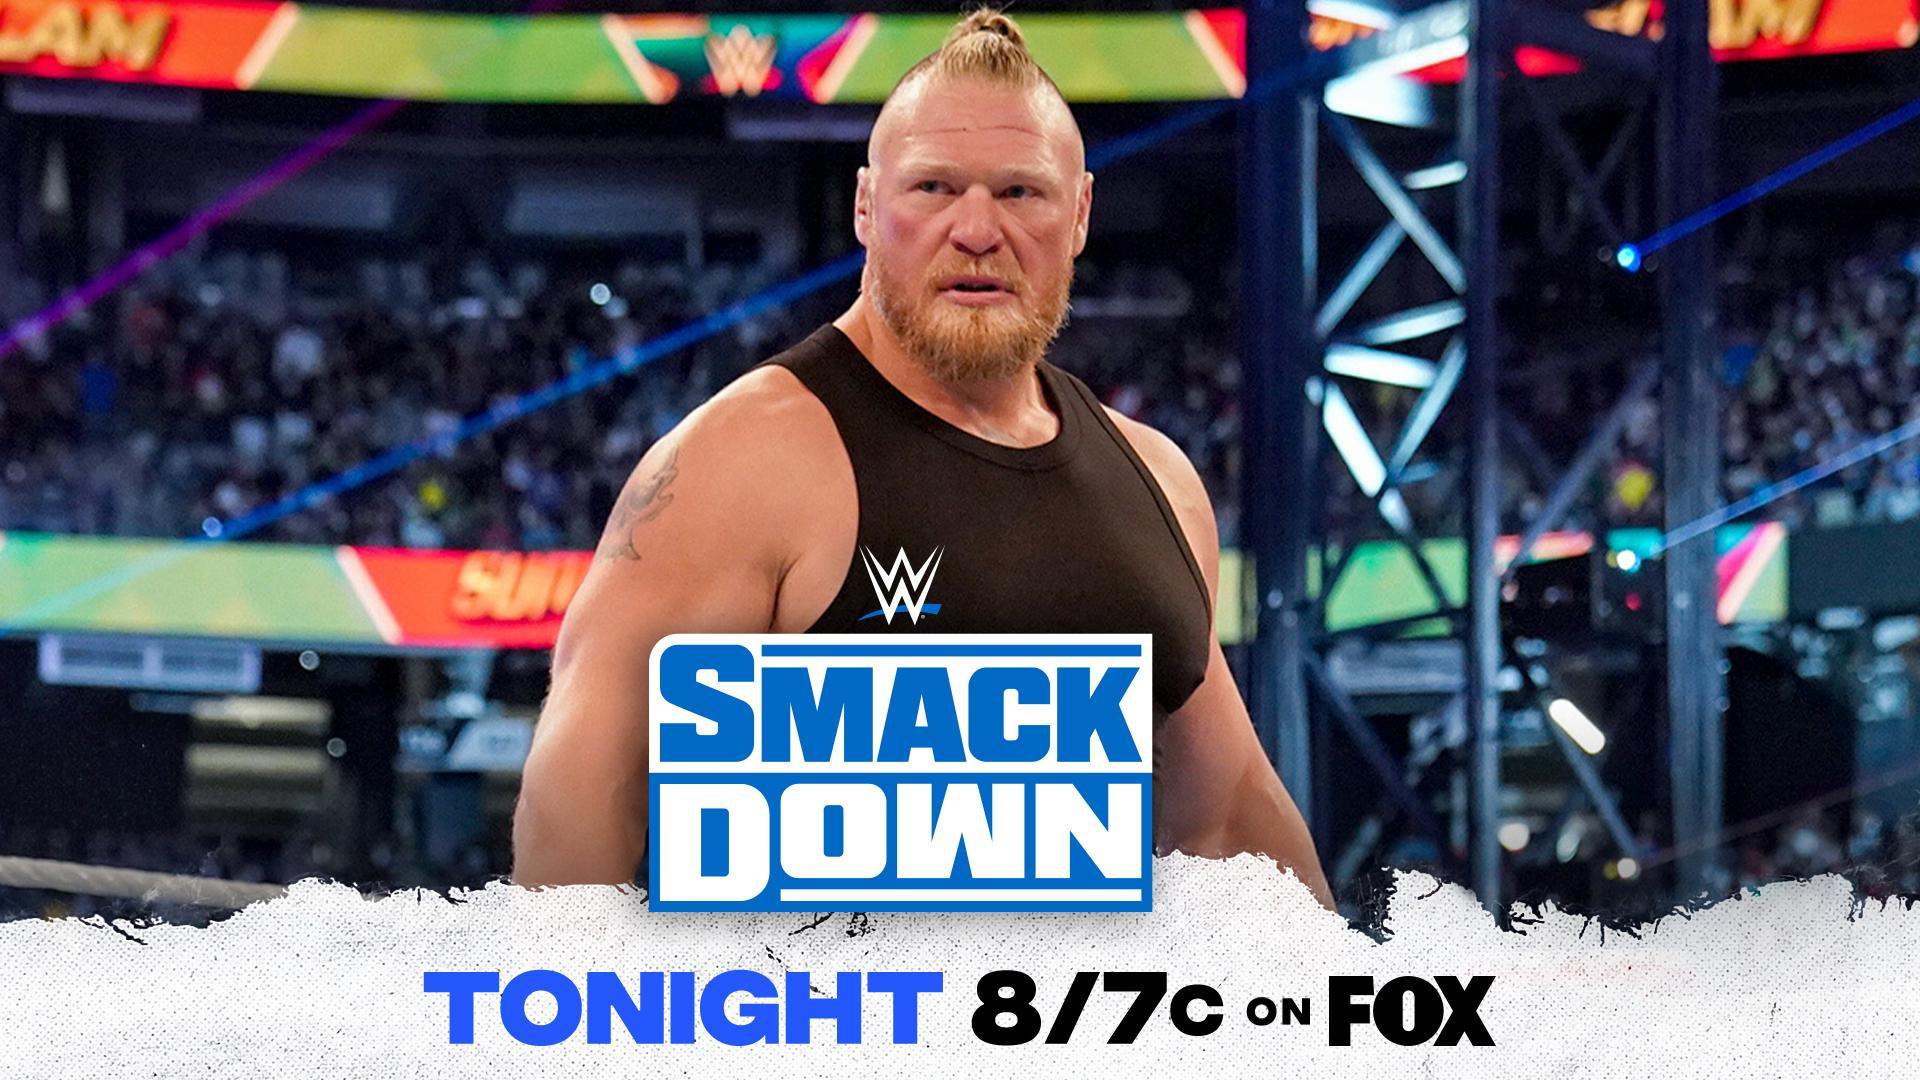 WWE Super SmackDown Results – WWE's Return To MSG, Contract Signing, Title Match, More